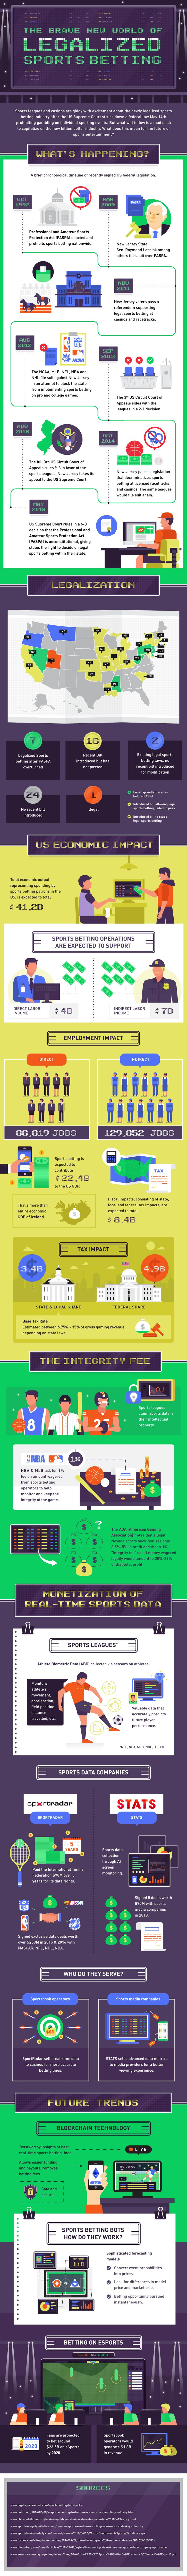 Legalized Sports Betting Infographic